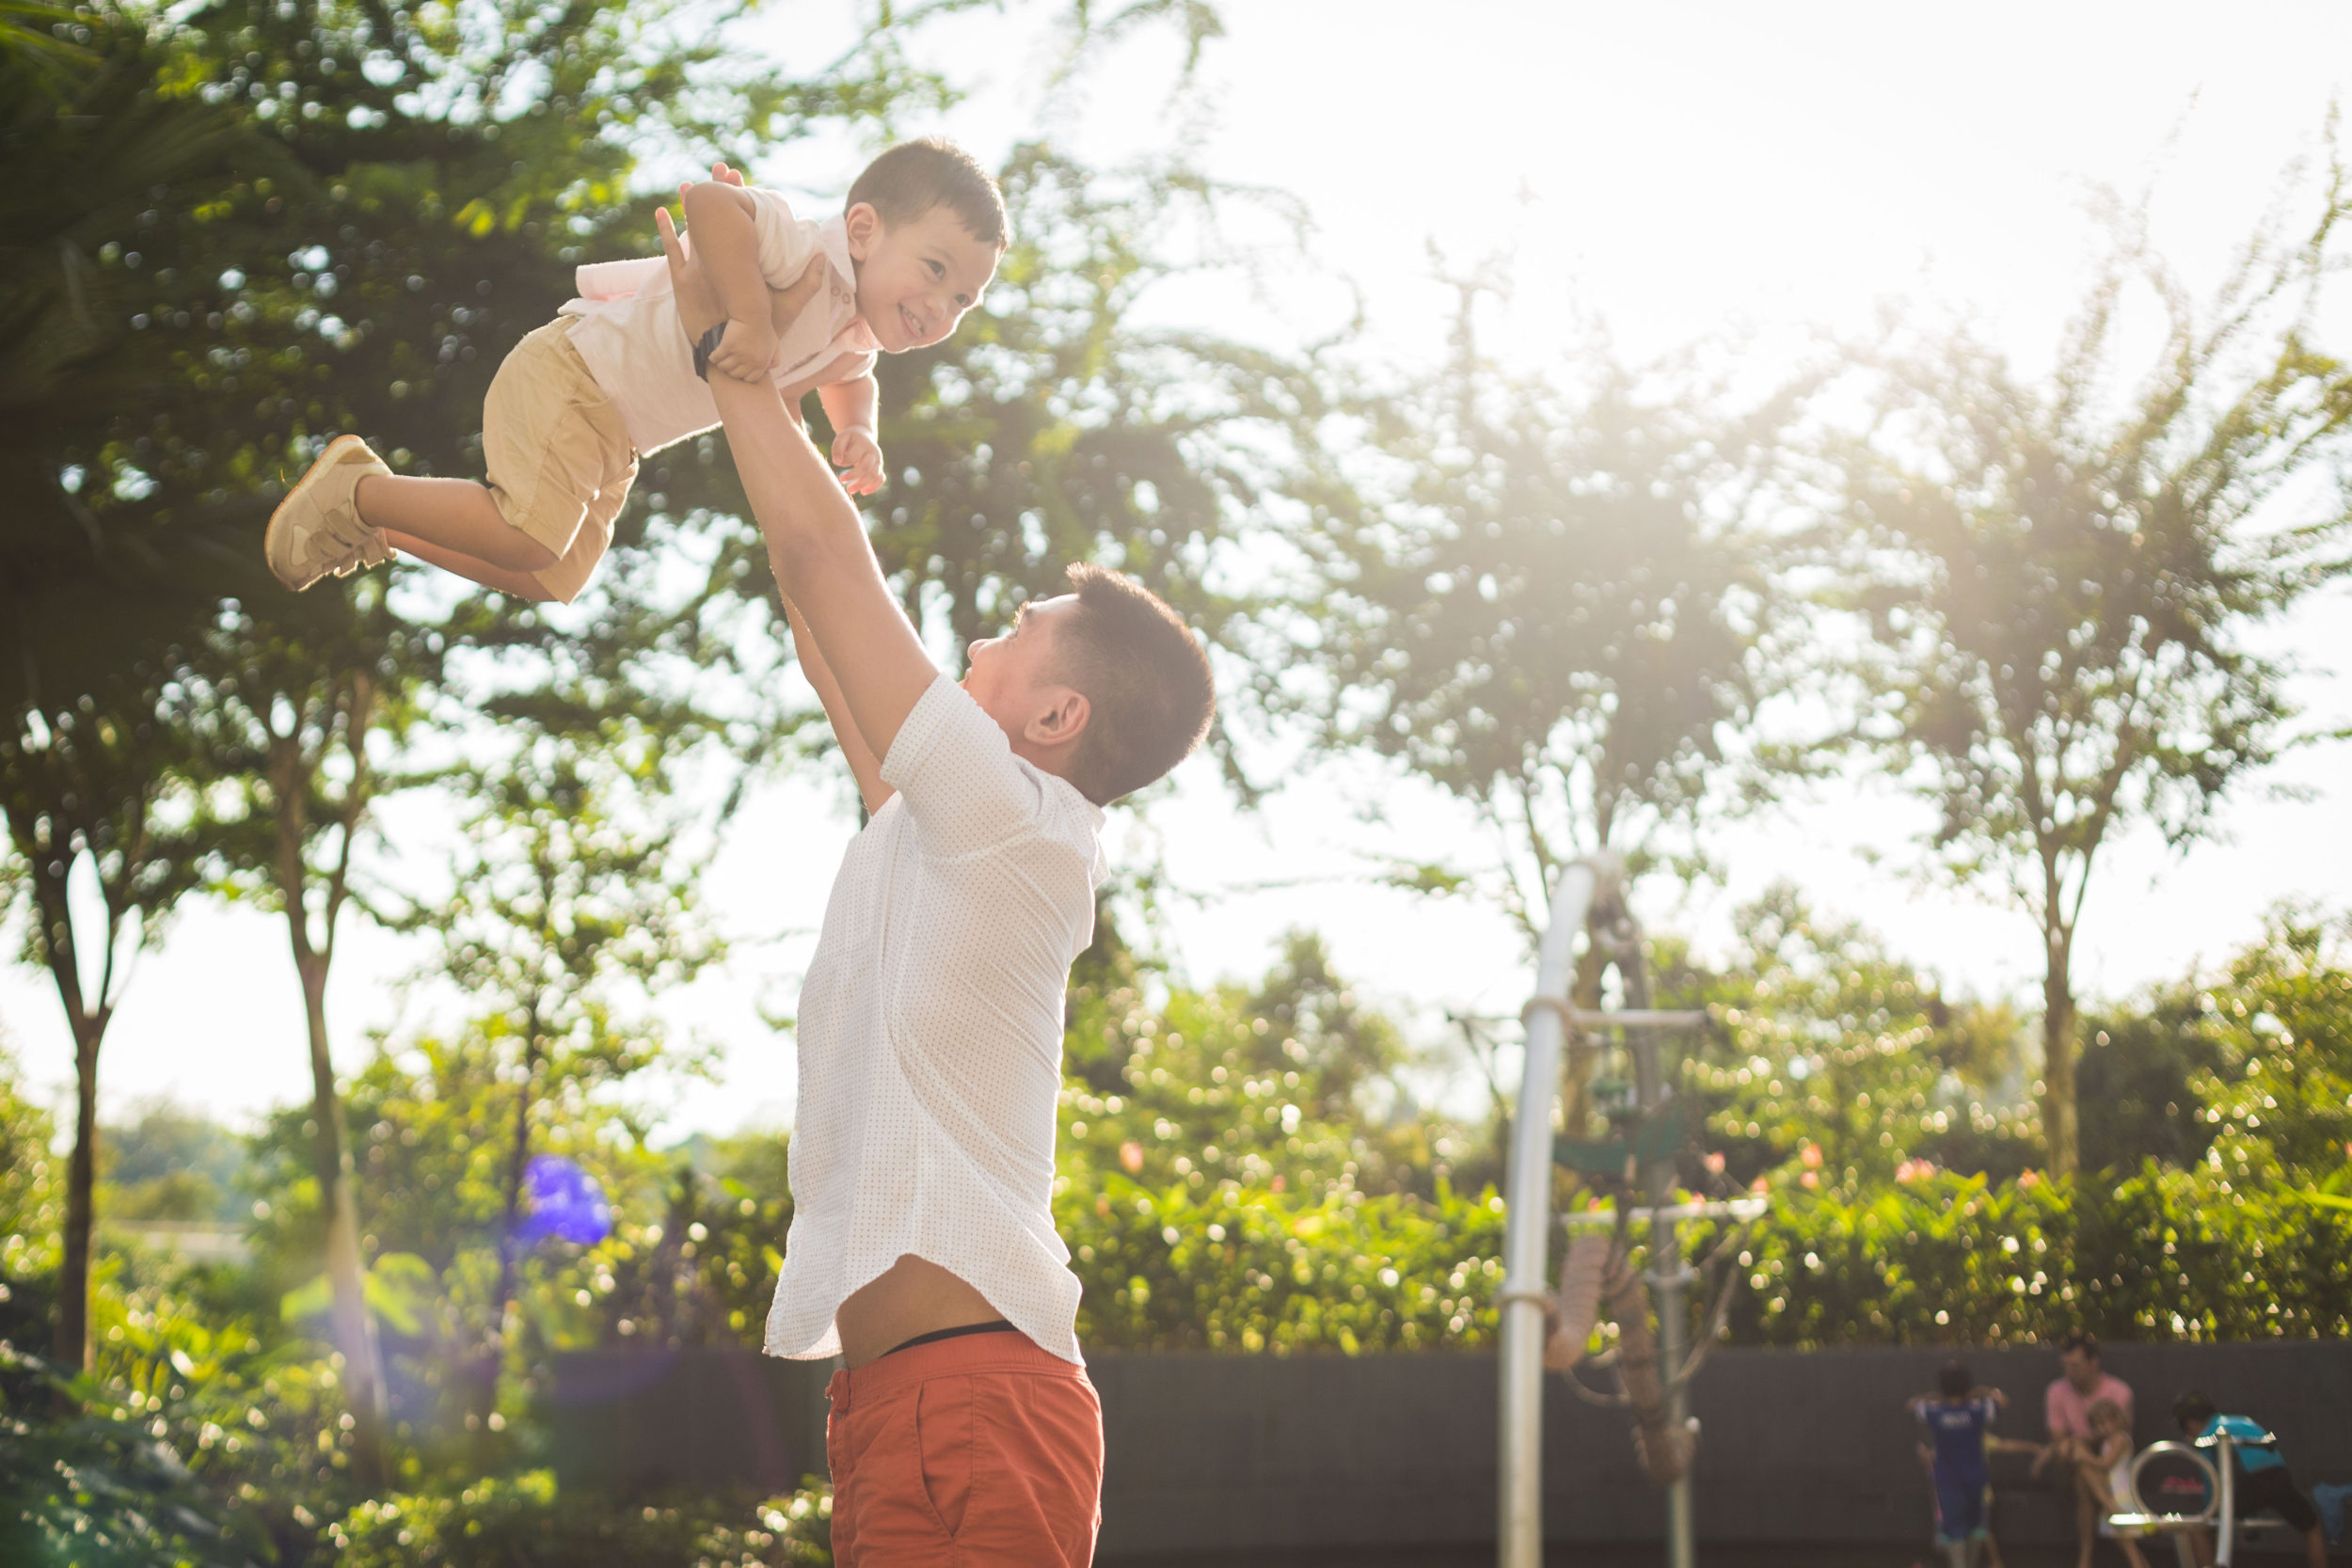 Experienced Family Photographer in Singapore